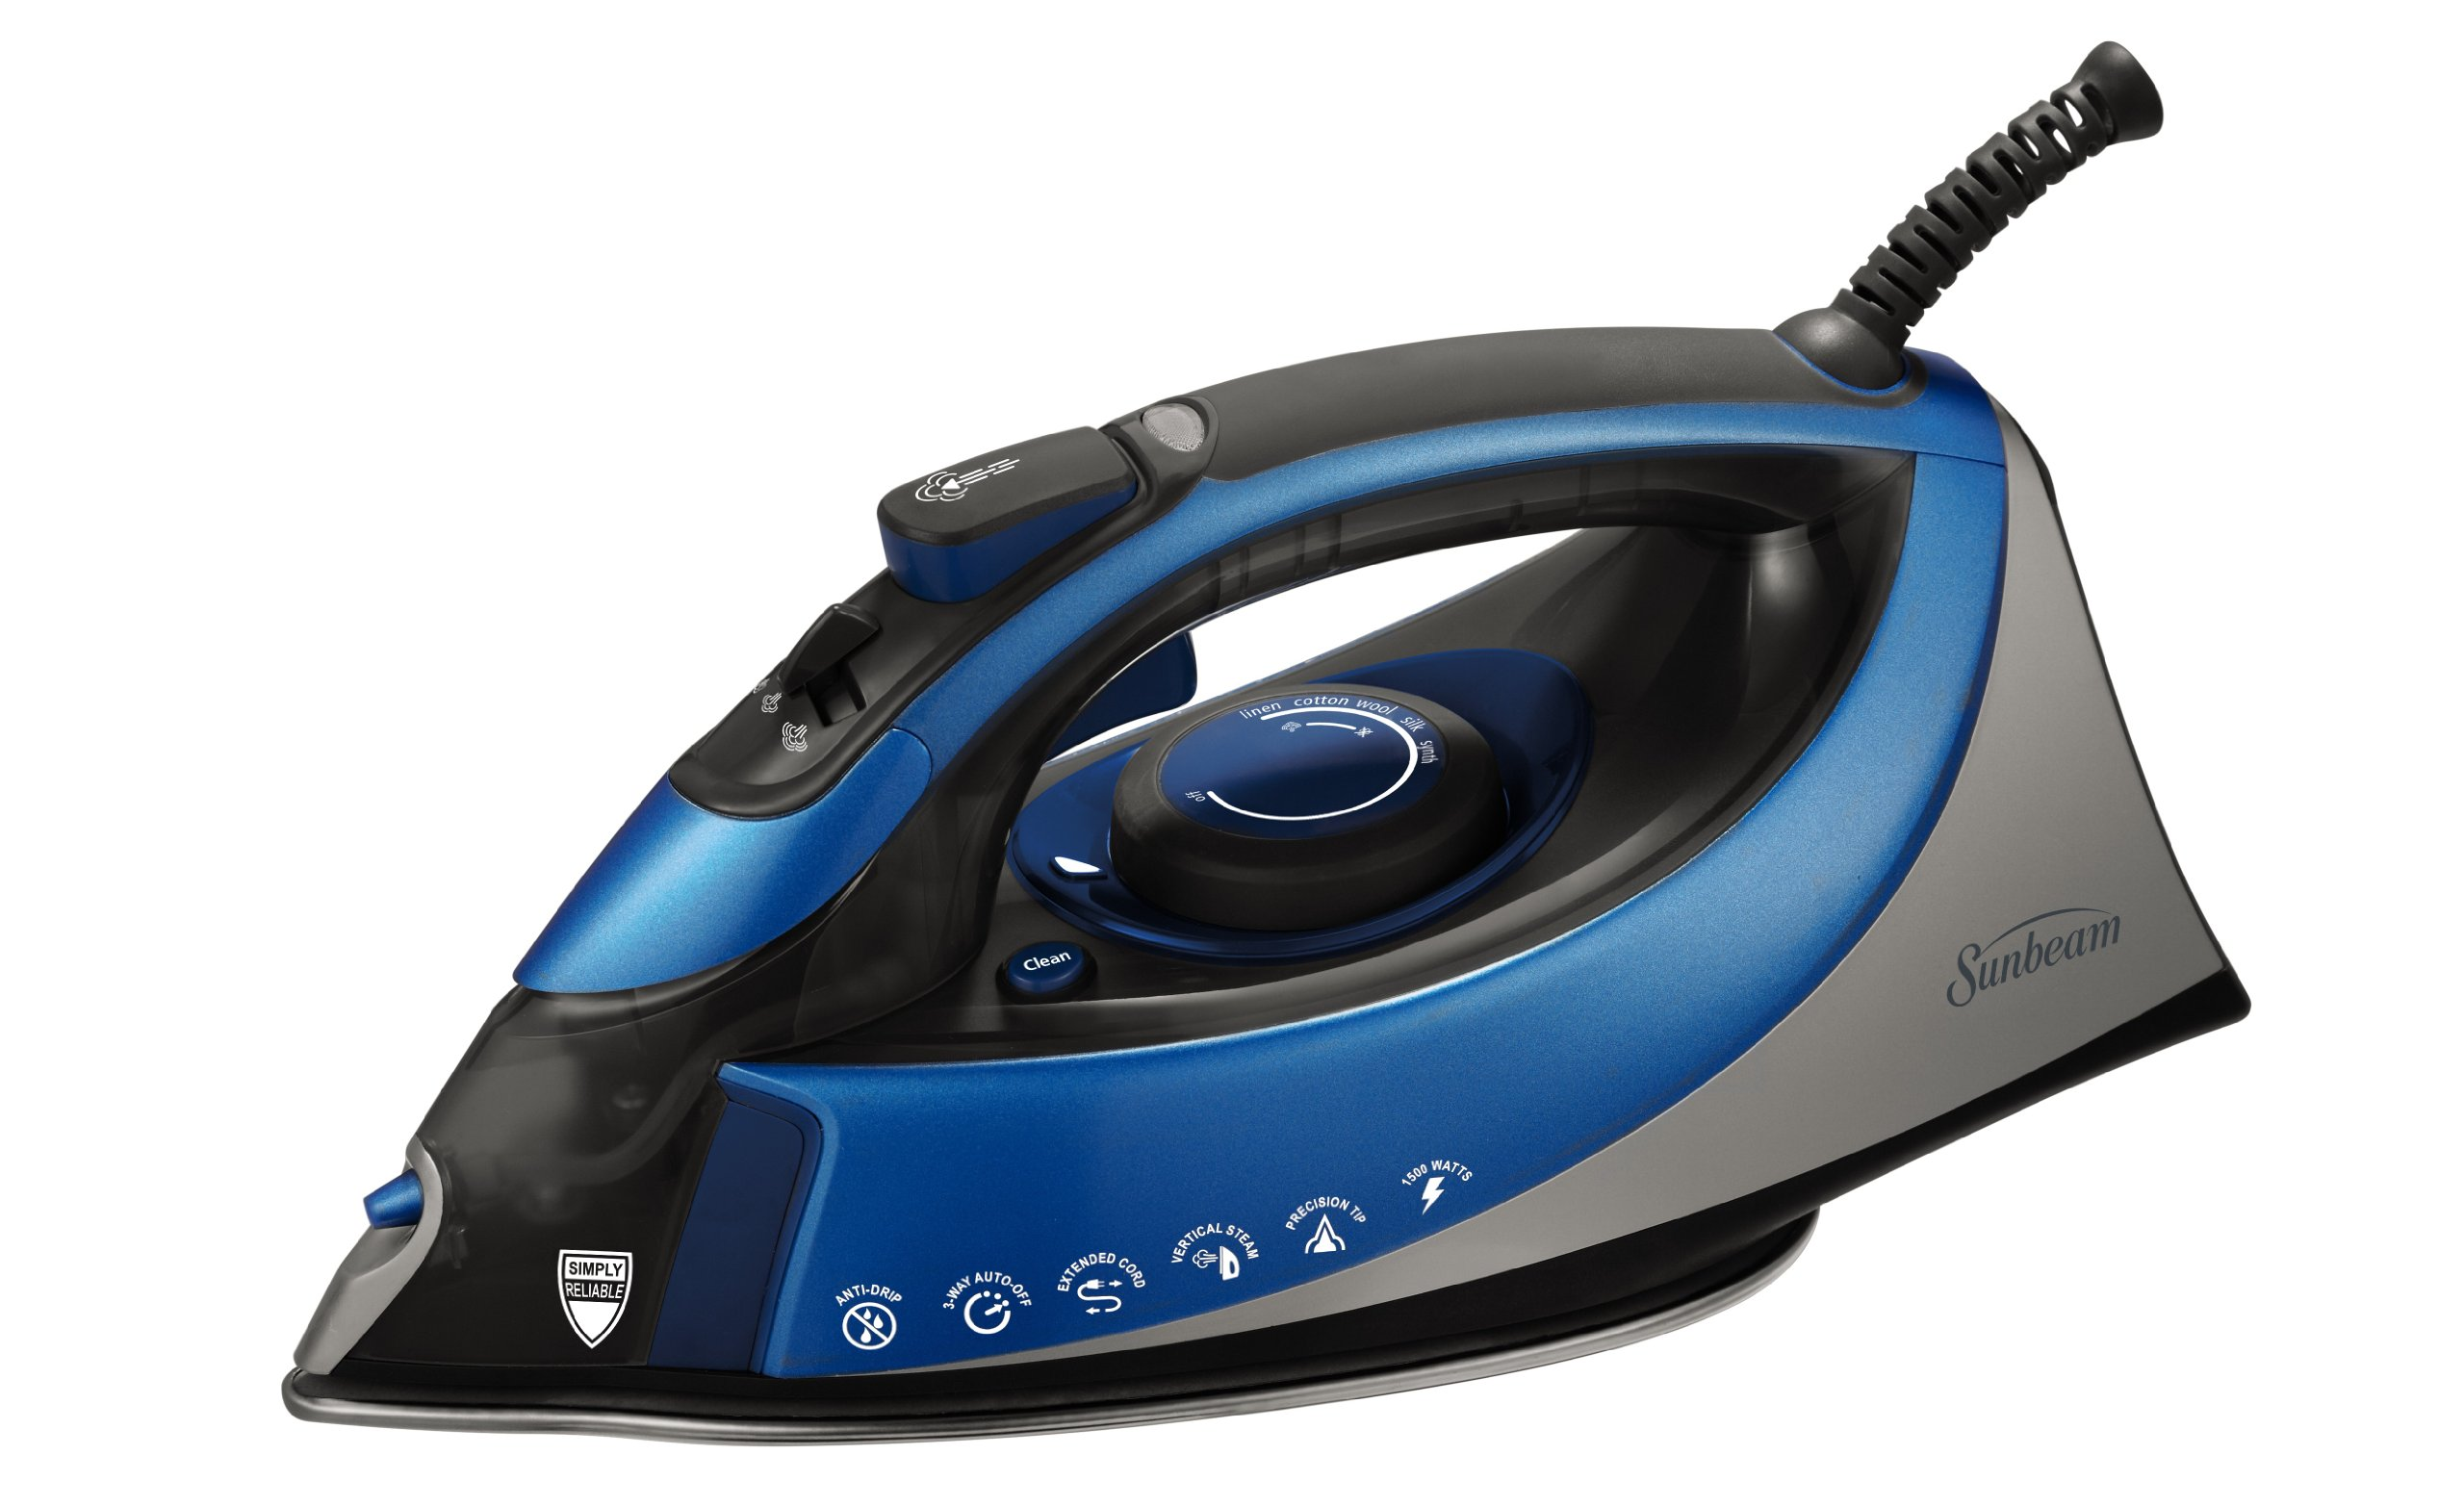 Sunbeam Turbo Steam 1500 Watt XL-size Anti-Drip Non-Stick Soleplate Iron with Shot of Steam/Vertical Shot feature and 10' 360-degree Swivel Cord, Grey/Blue, GCSBCS-200-000 by Sunbeam